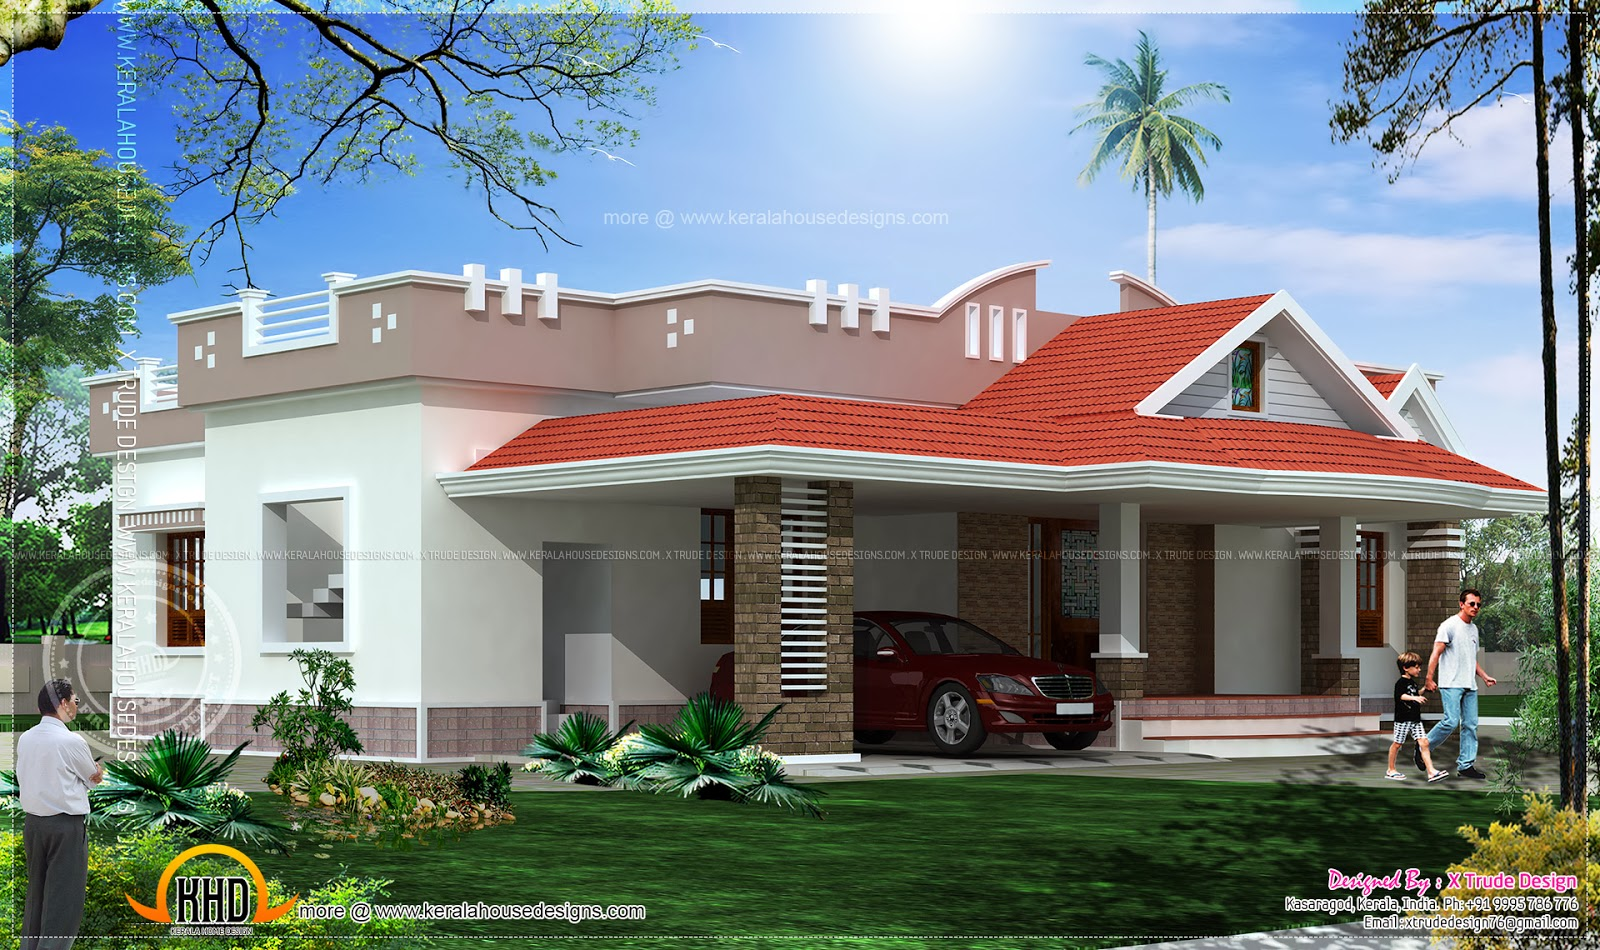 Single storied 2 bedroom house elevation kerala home for Kerala style single storey house plans